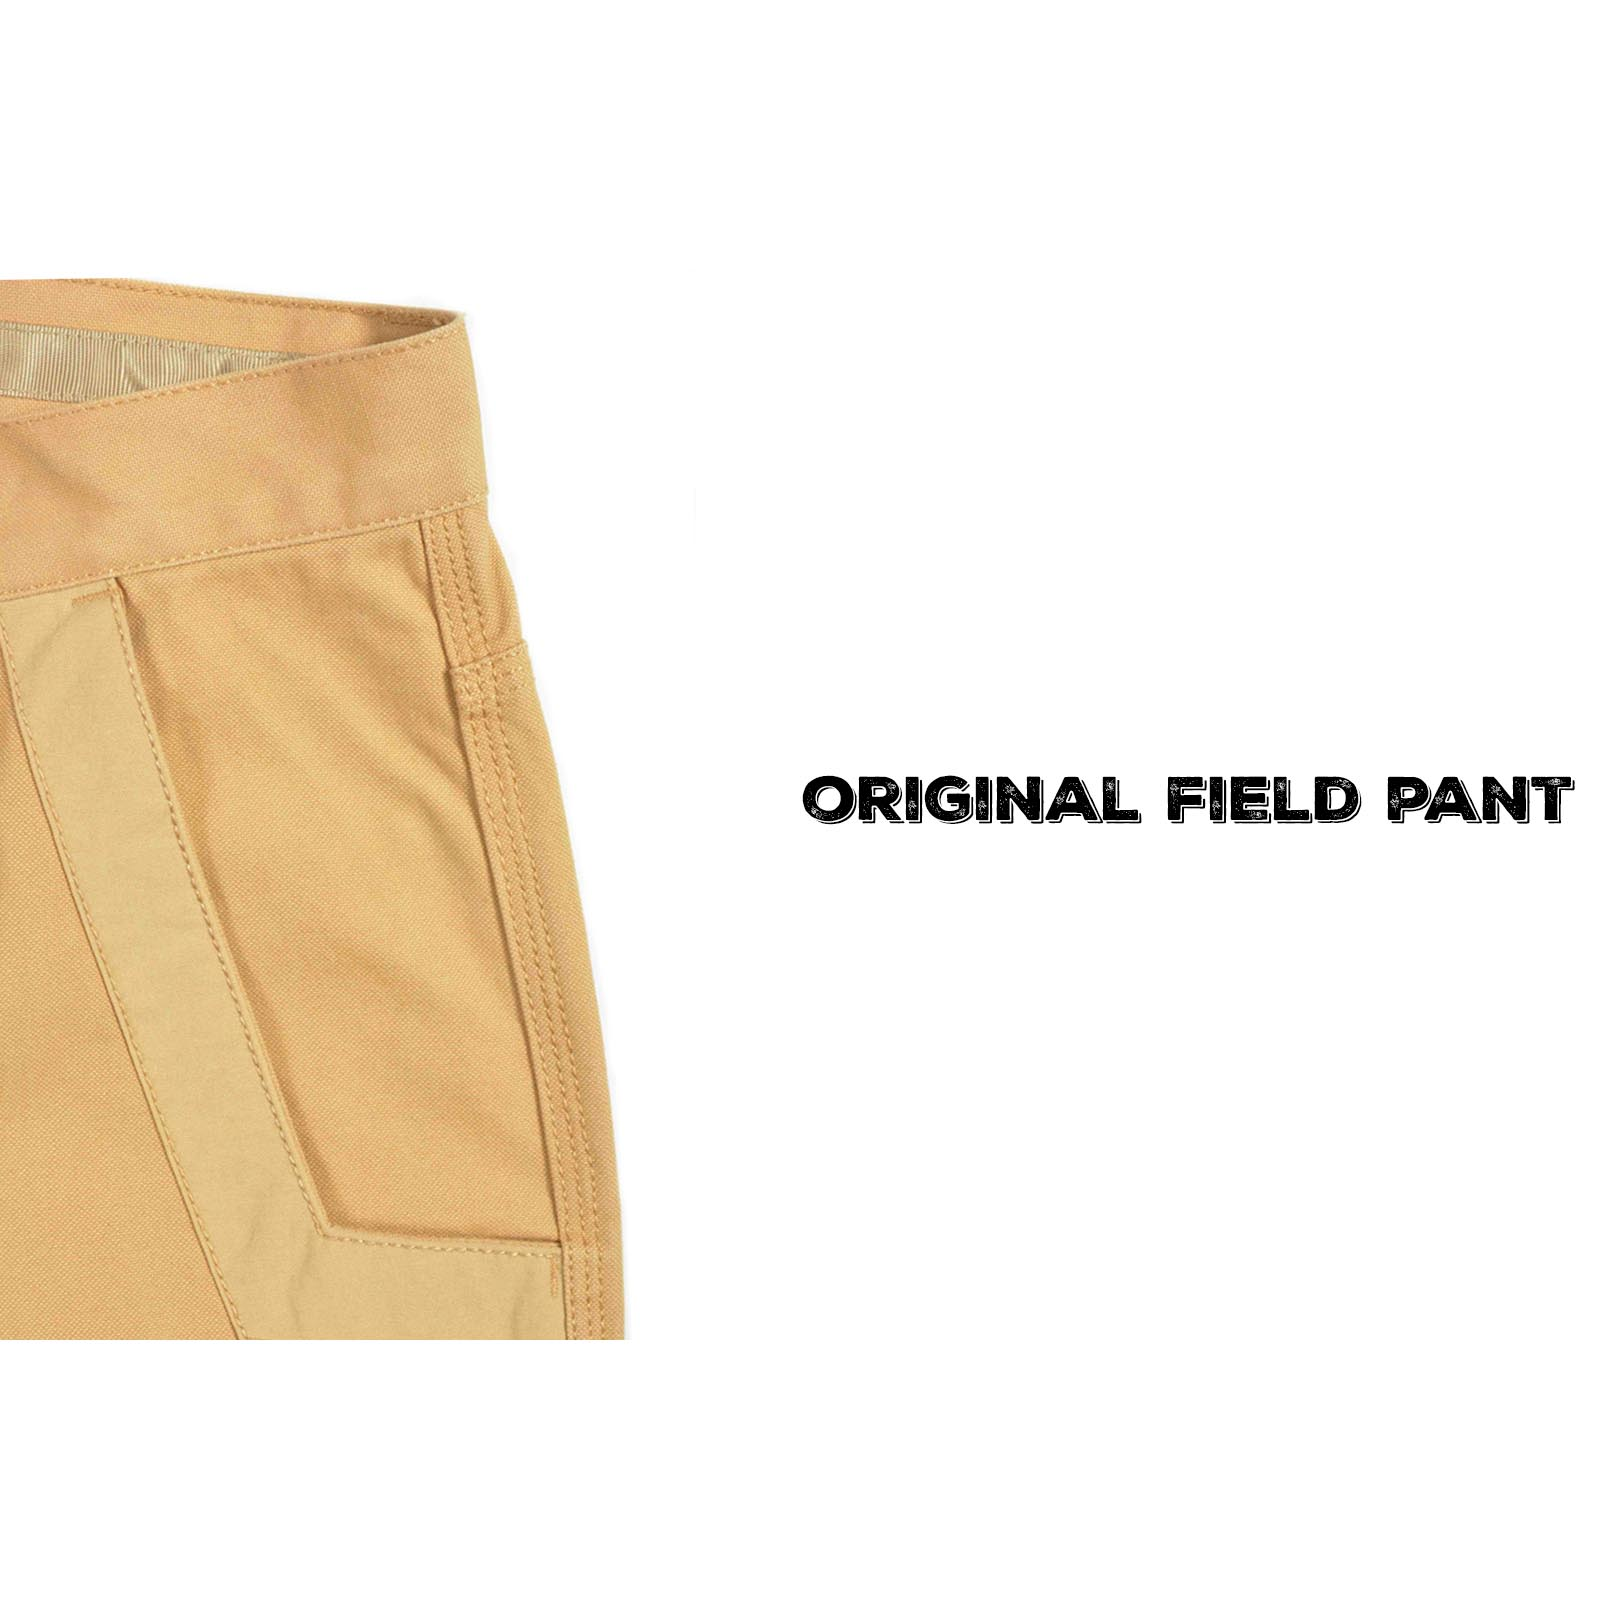 Original Field Pant Detail